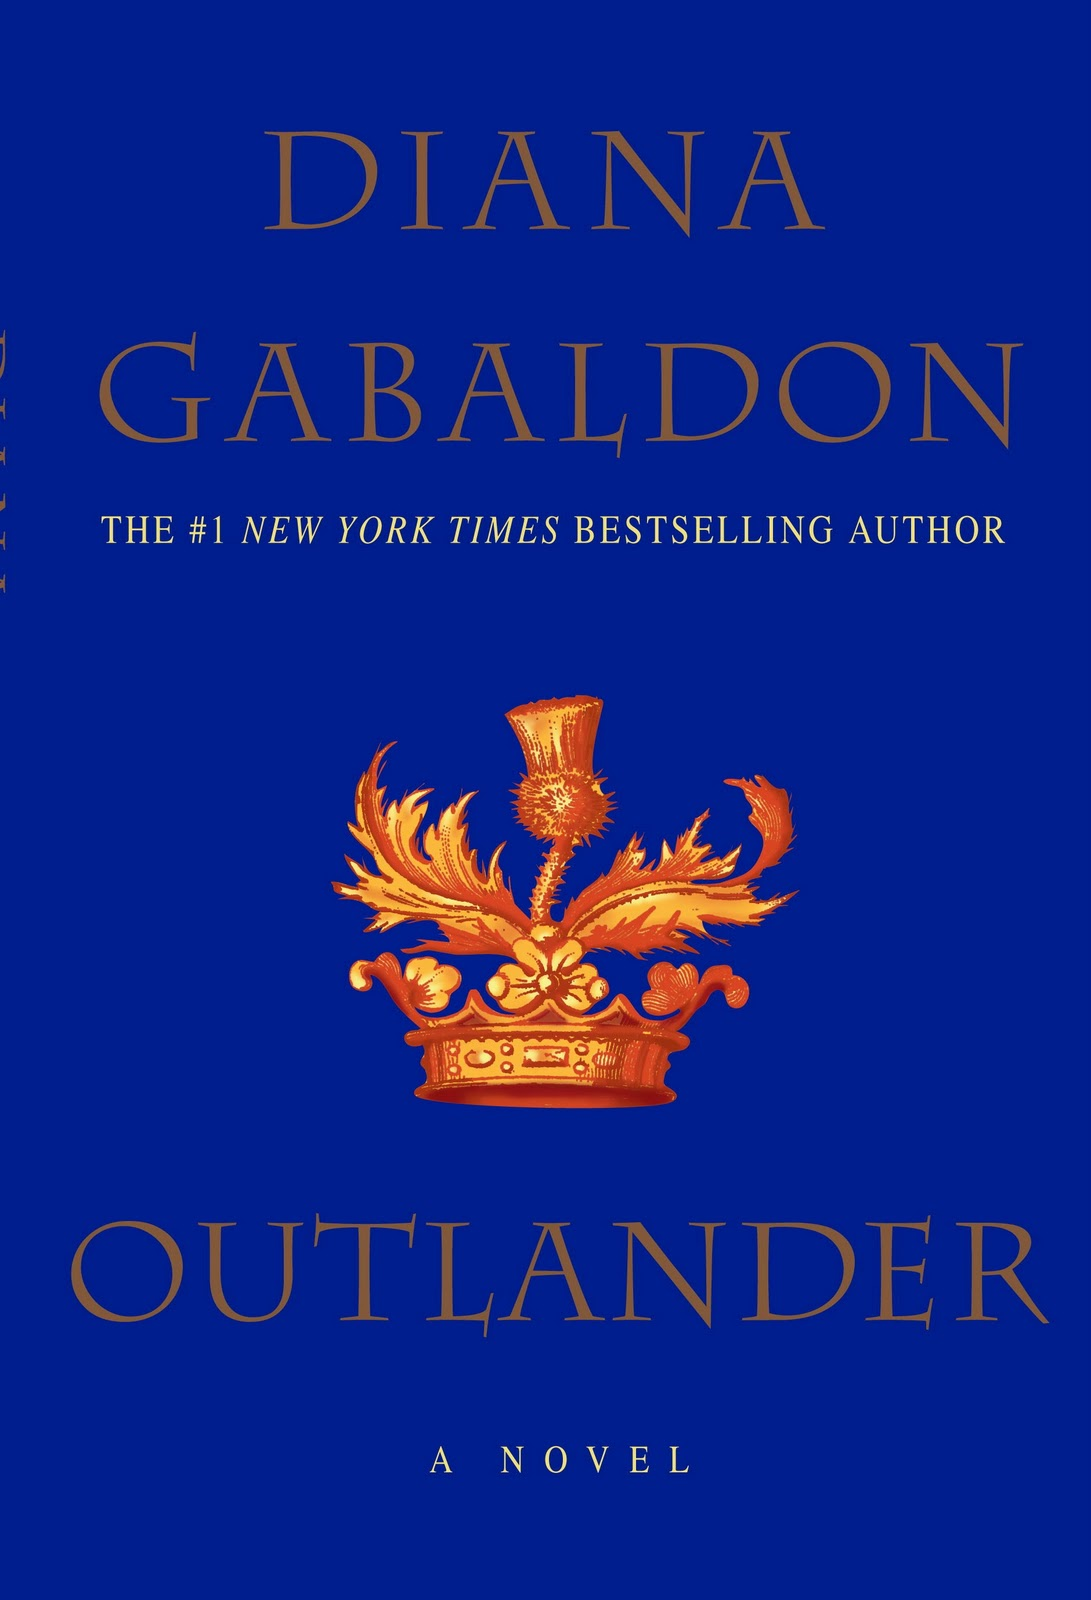 Book & TV Show Review: Outlander by Diana Gabaldon